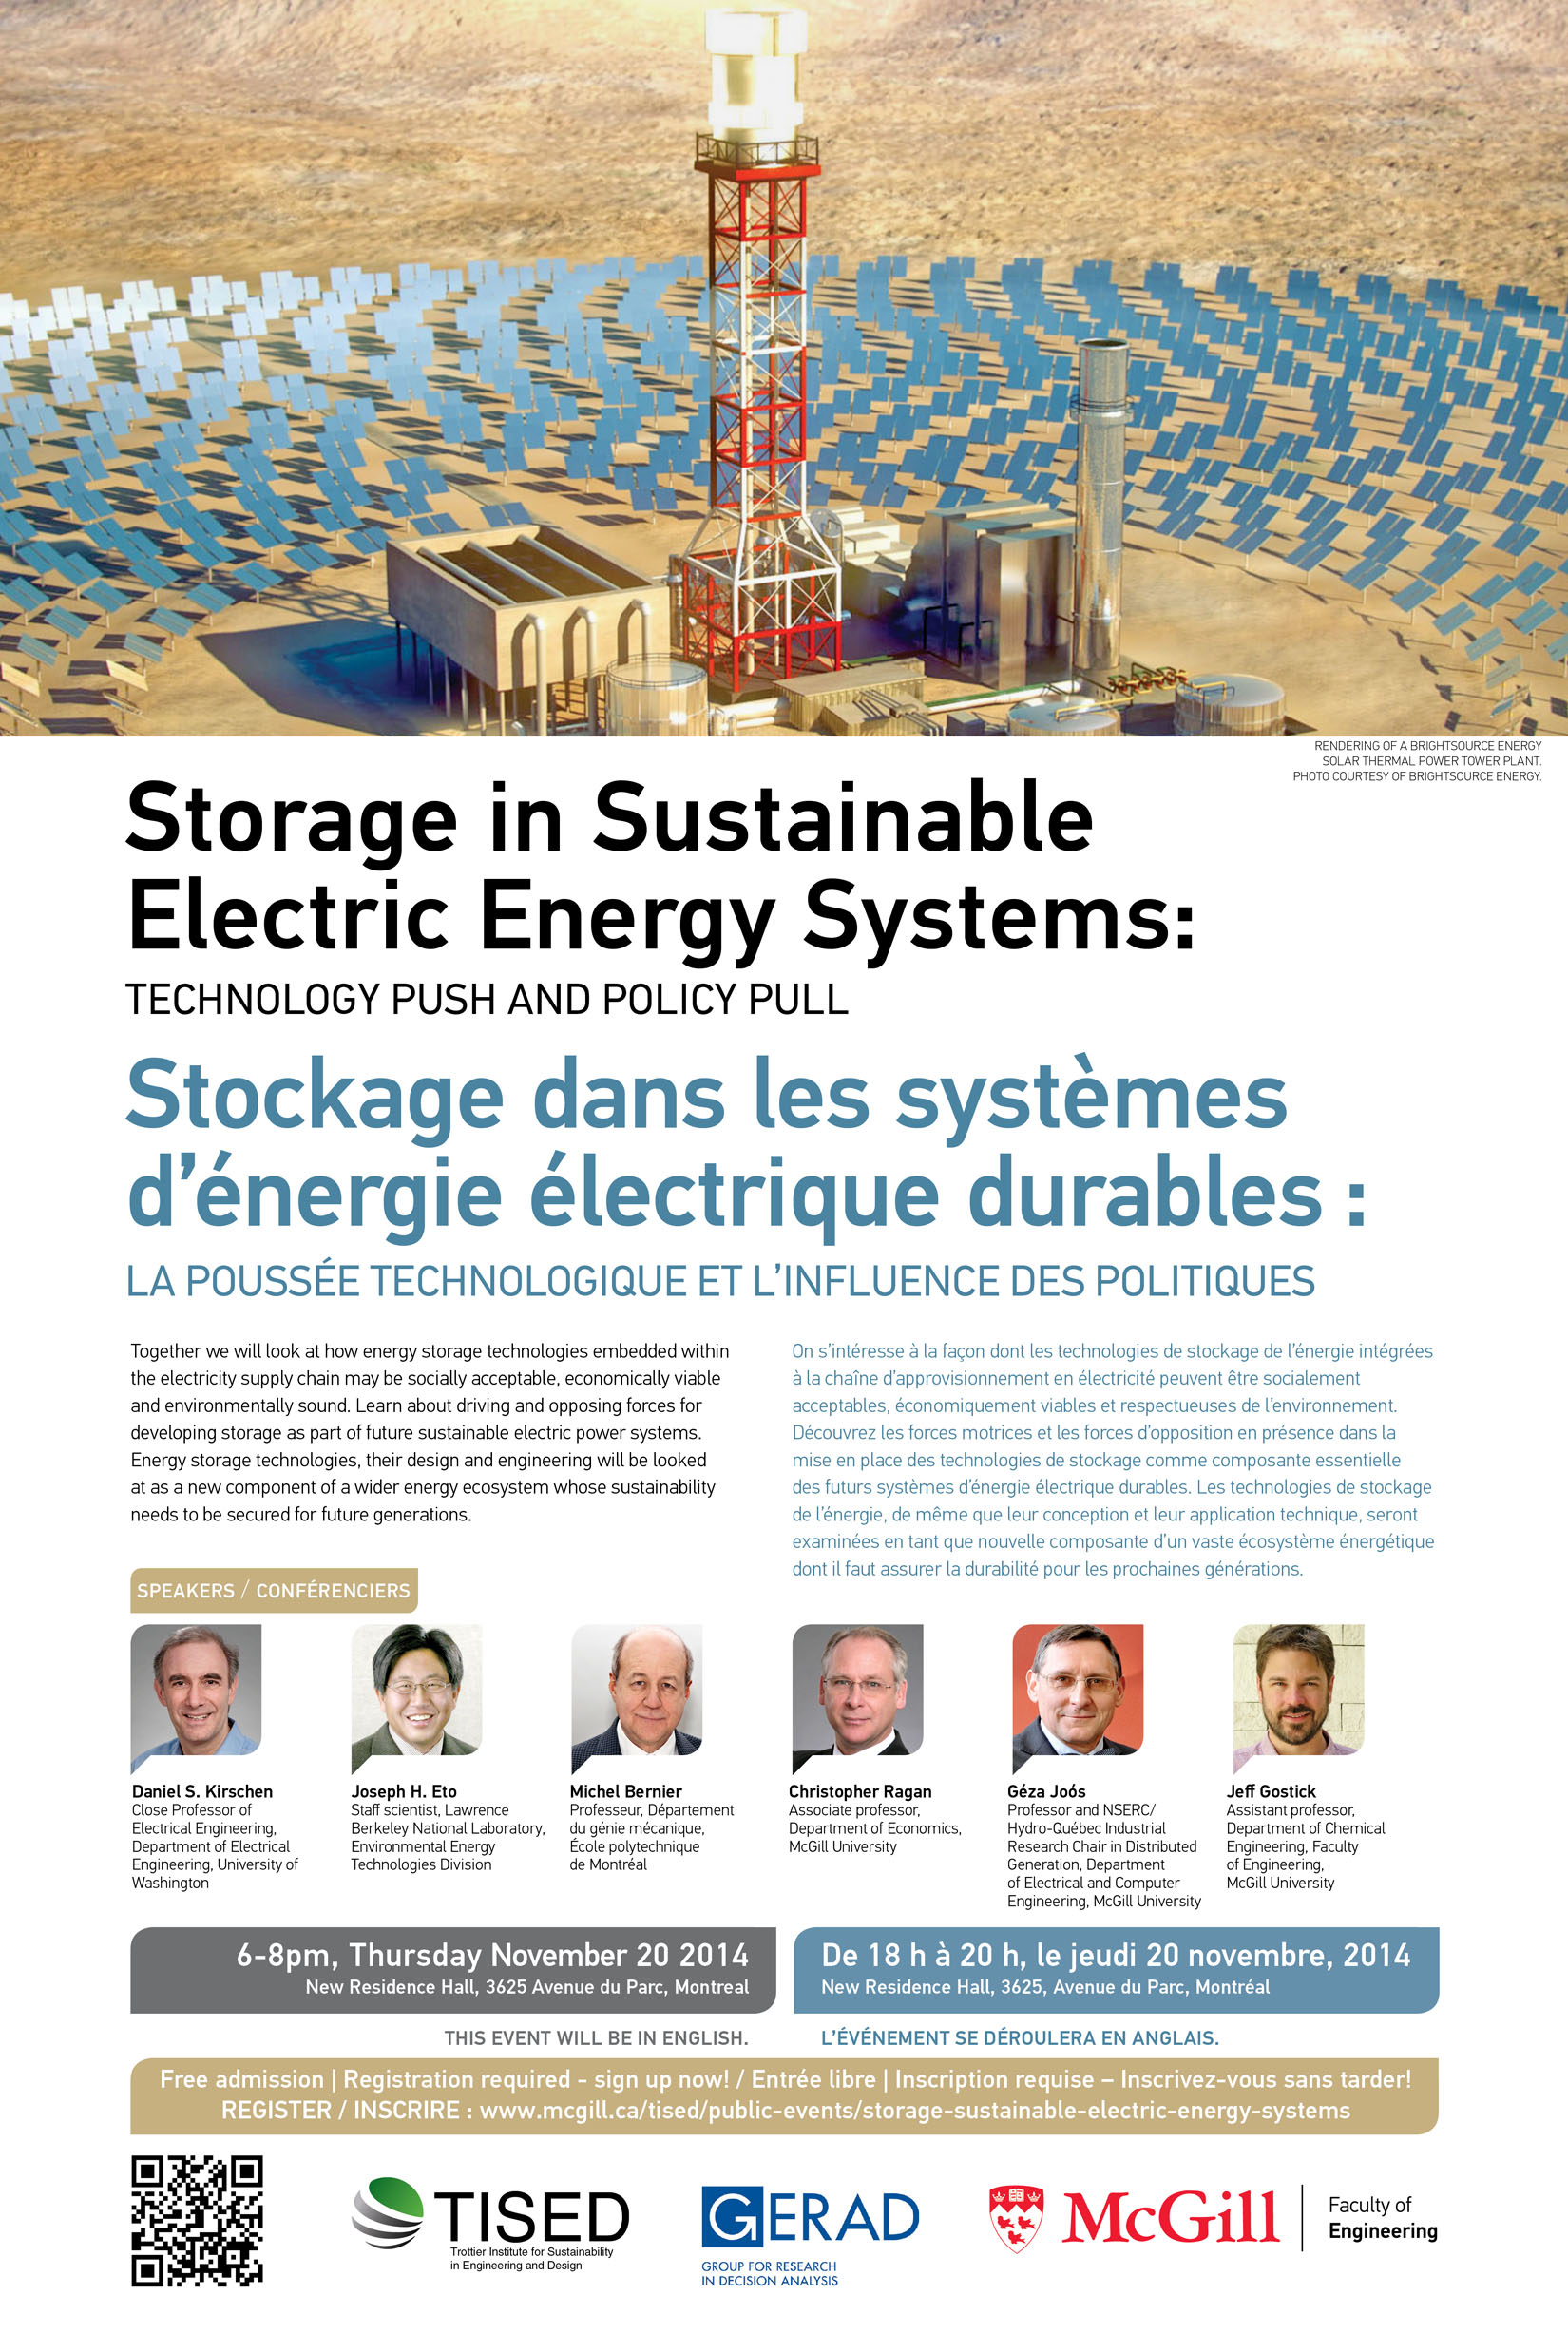 Storage in Sustainable Electric Energy Systems: Technology Push and Policy Pull